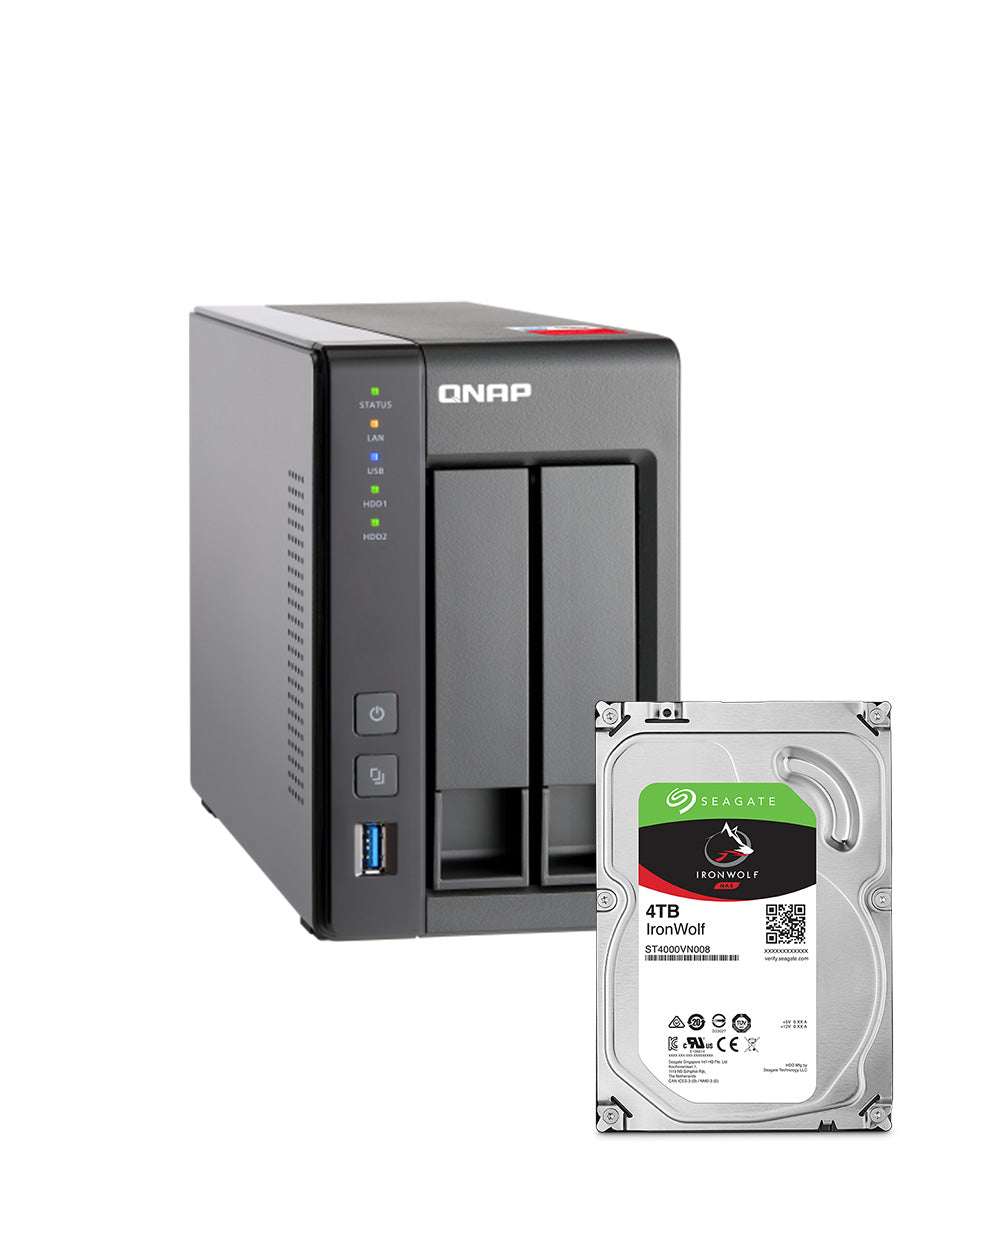 QNAP TS-251+-4GB 8TB with 4TB Seagate IronWolf Drives